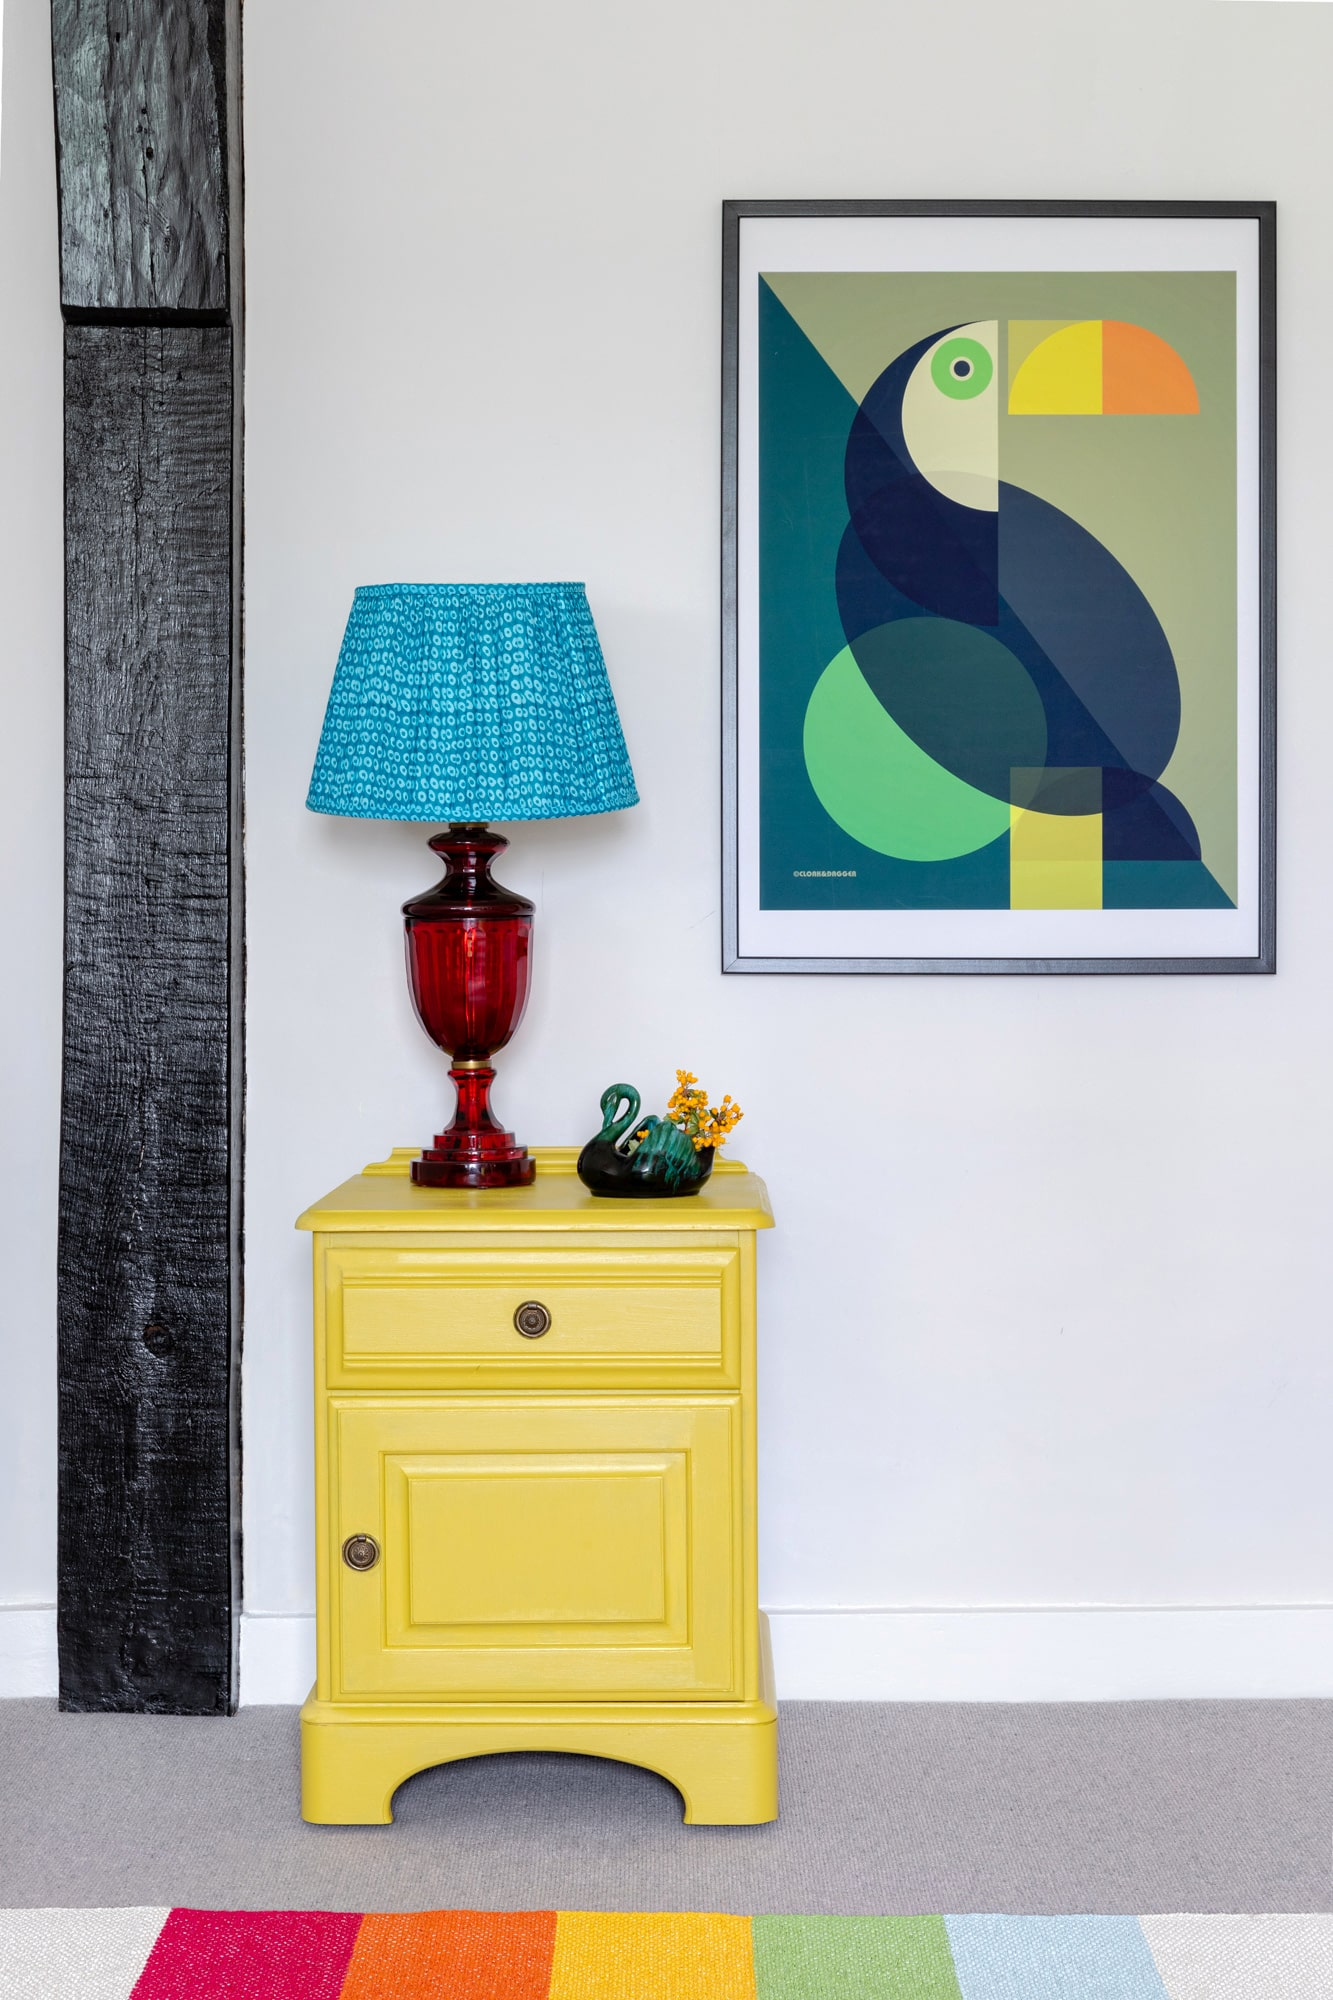 detail interior shot of a bedroom: yellow bedside table with red and blue lamp; vivid poster of a toucan bird on the wall above